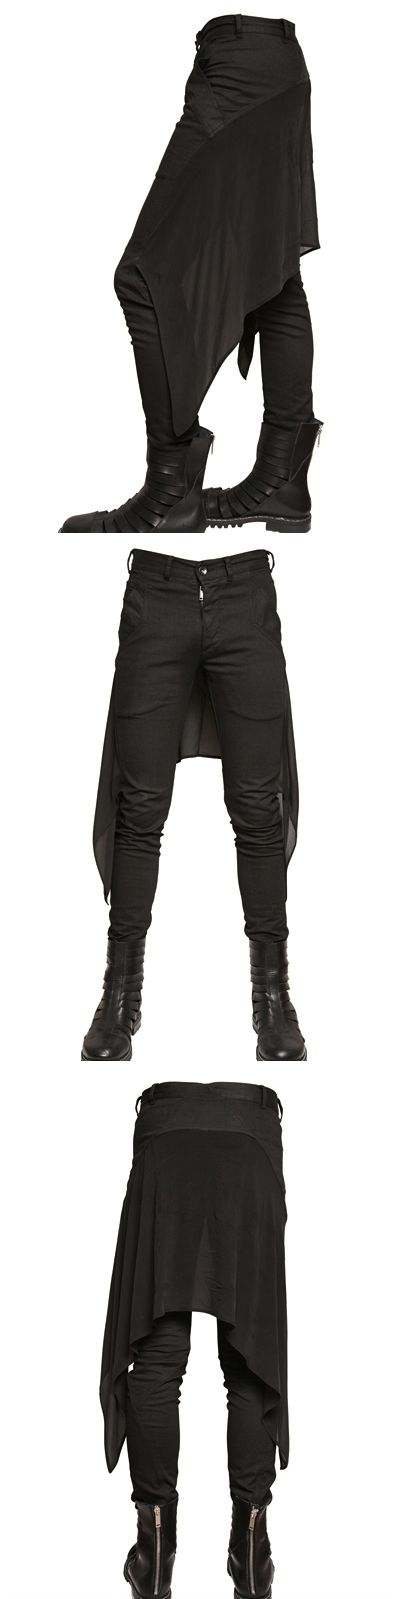 Visions of the Future: Silk Chiffon And Stretch Denim Jeans from Gareth Pugh.